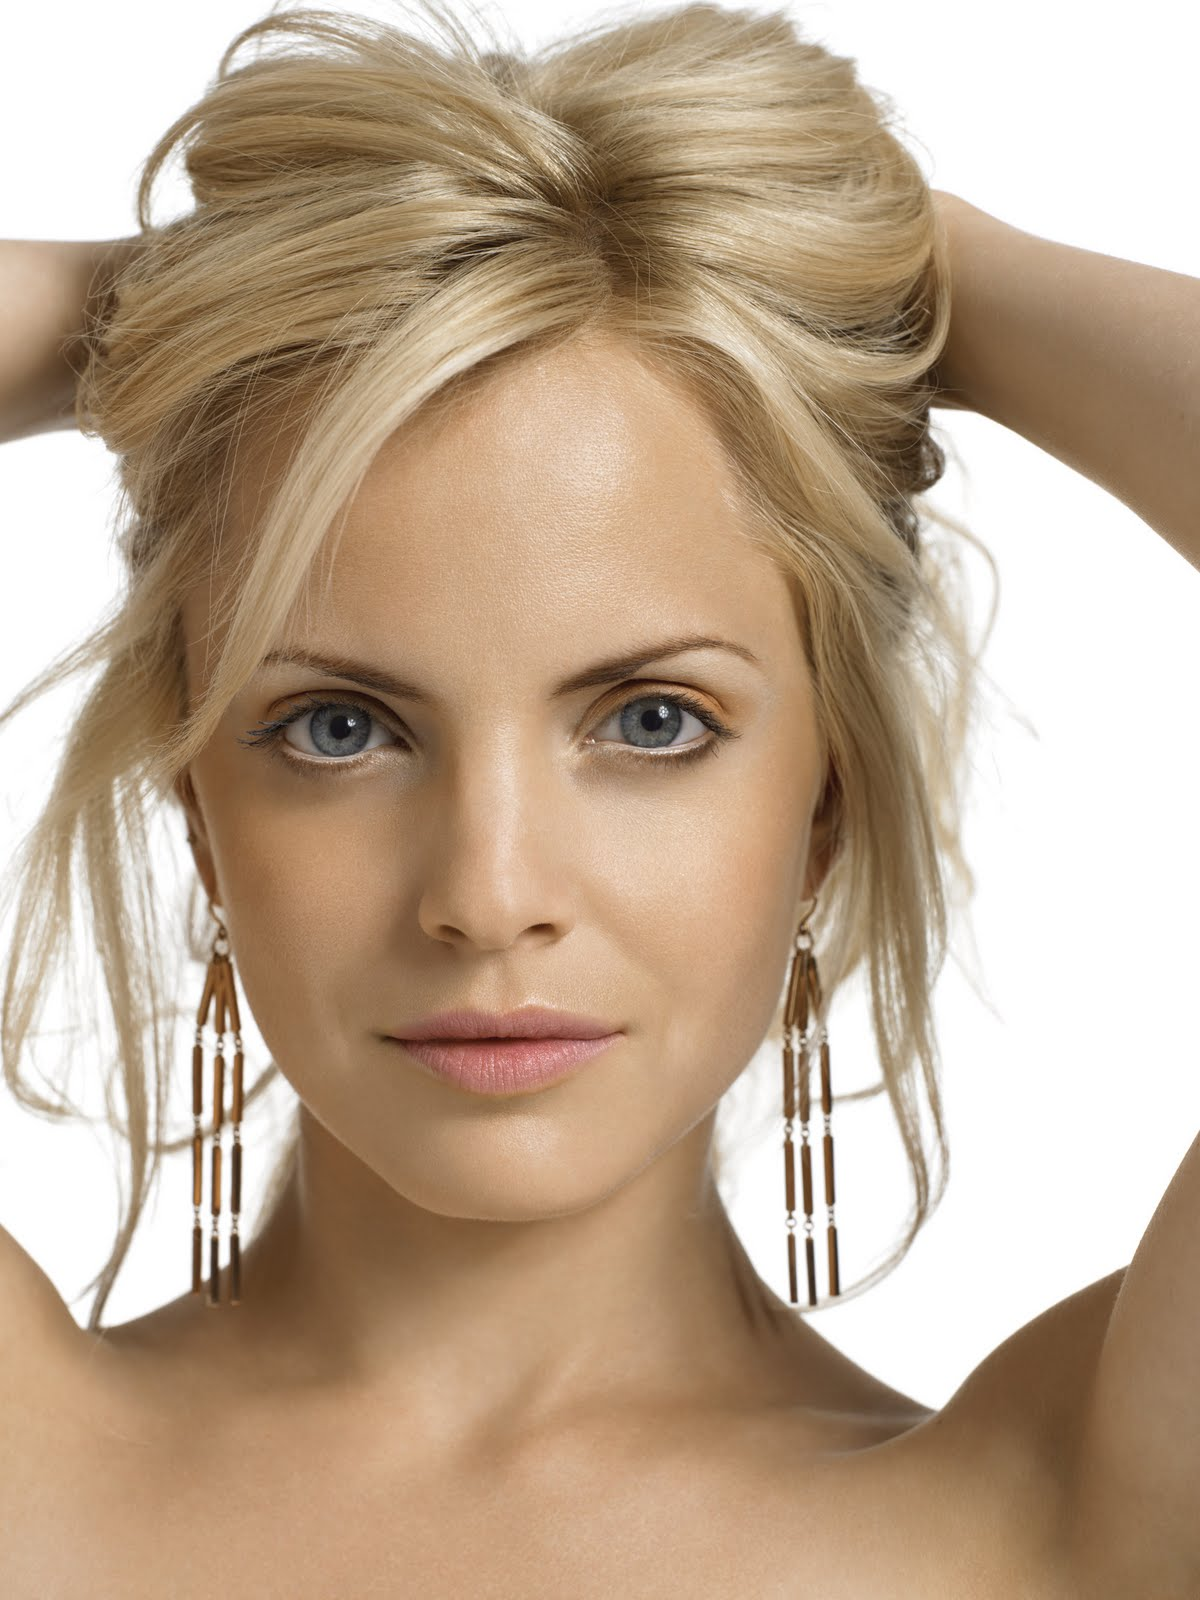 The Astounding Short Blonde Hairstyles For Women Image